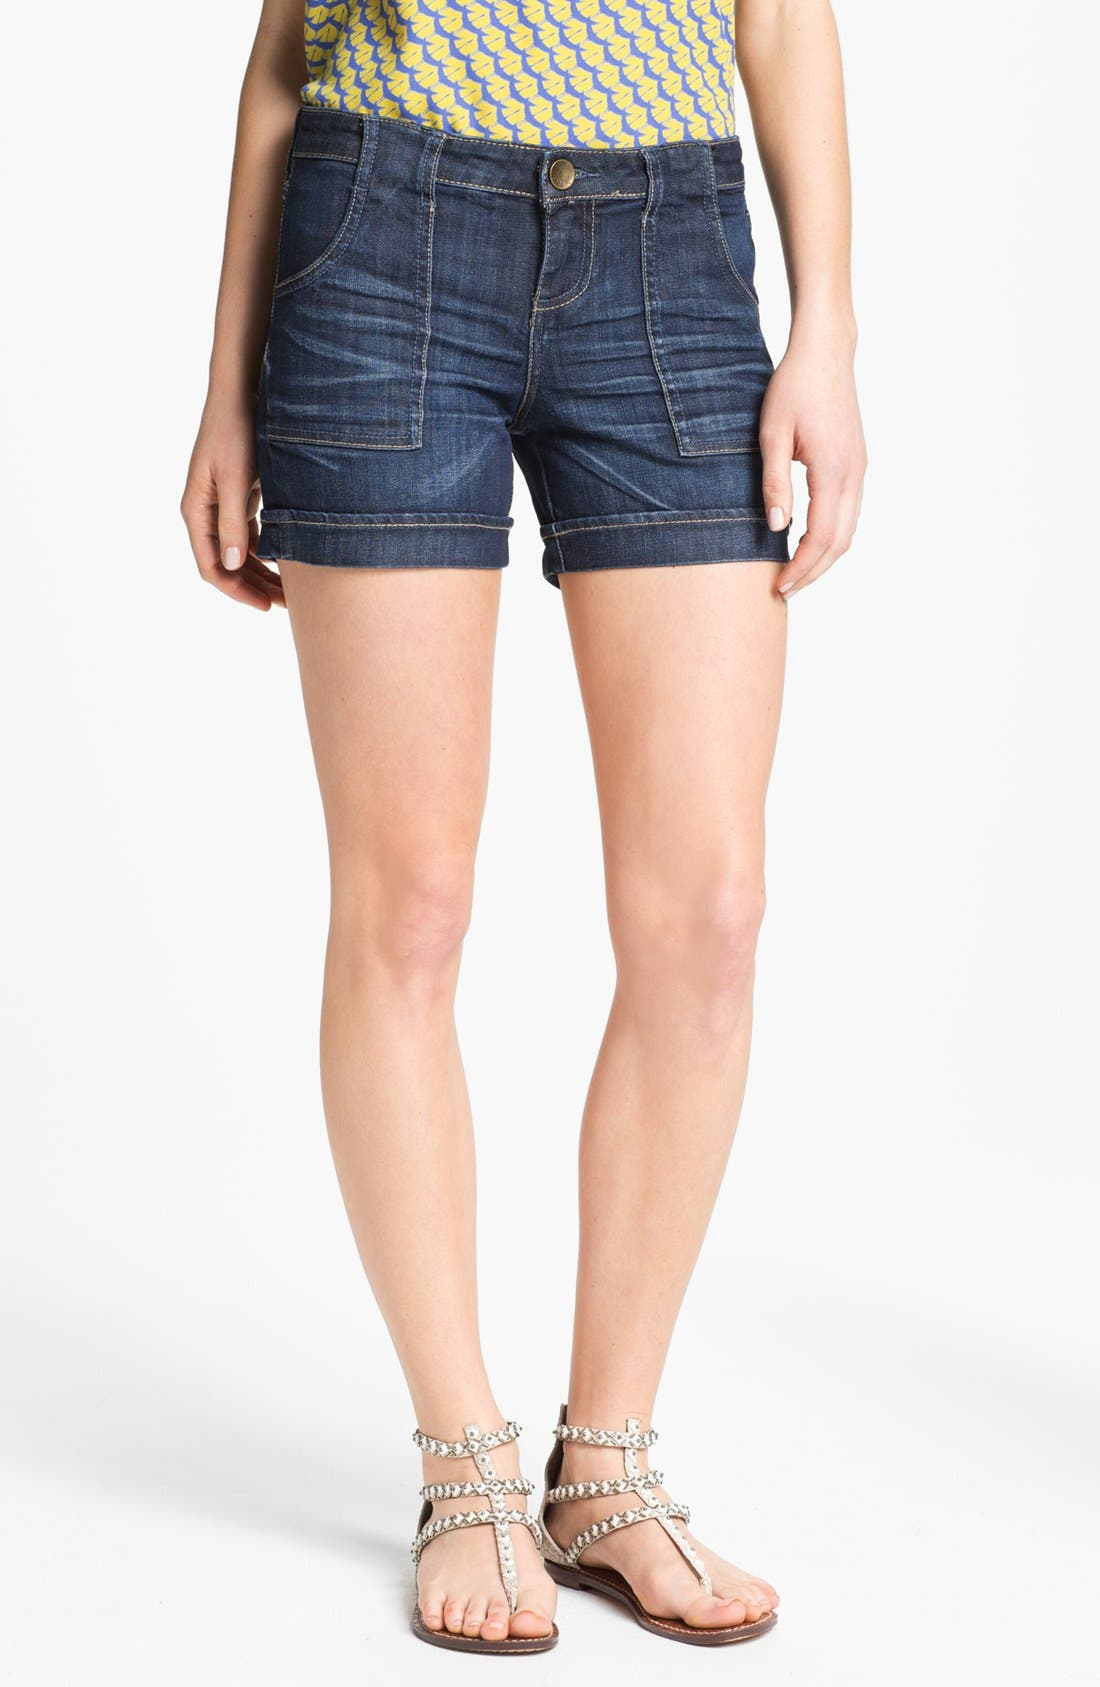 Alternate Image 1 Selected - KUT from the Kloth Cuff Denim Shorts